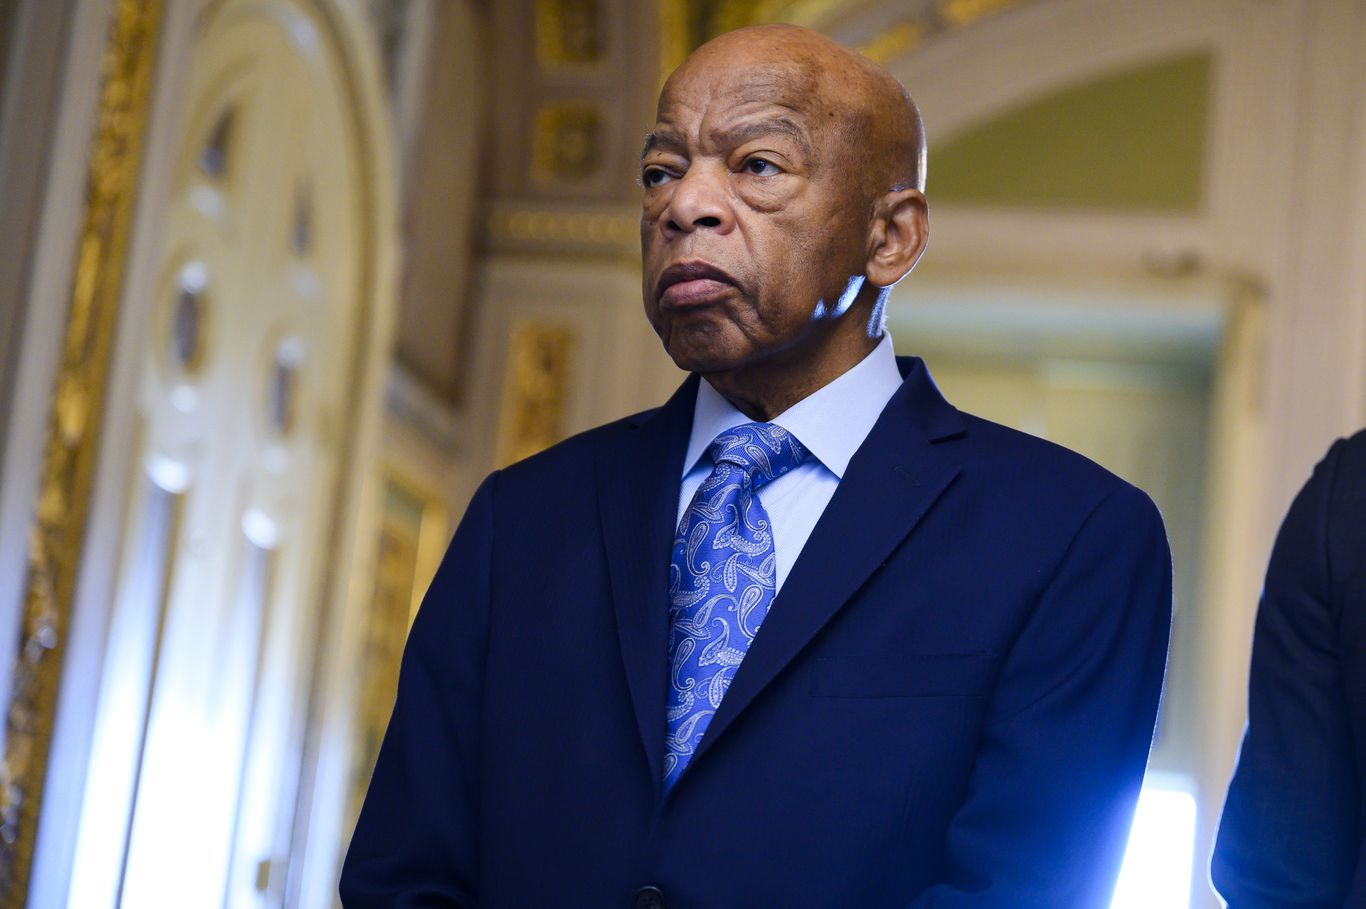 47 senators call on McConnell to allow vote on John Lewis Voting Rights Advancement Act thumbnail